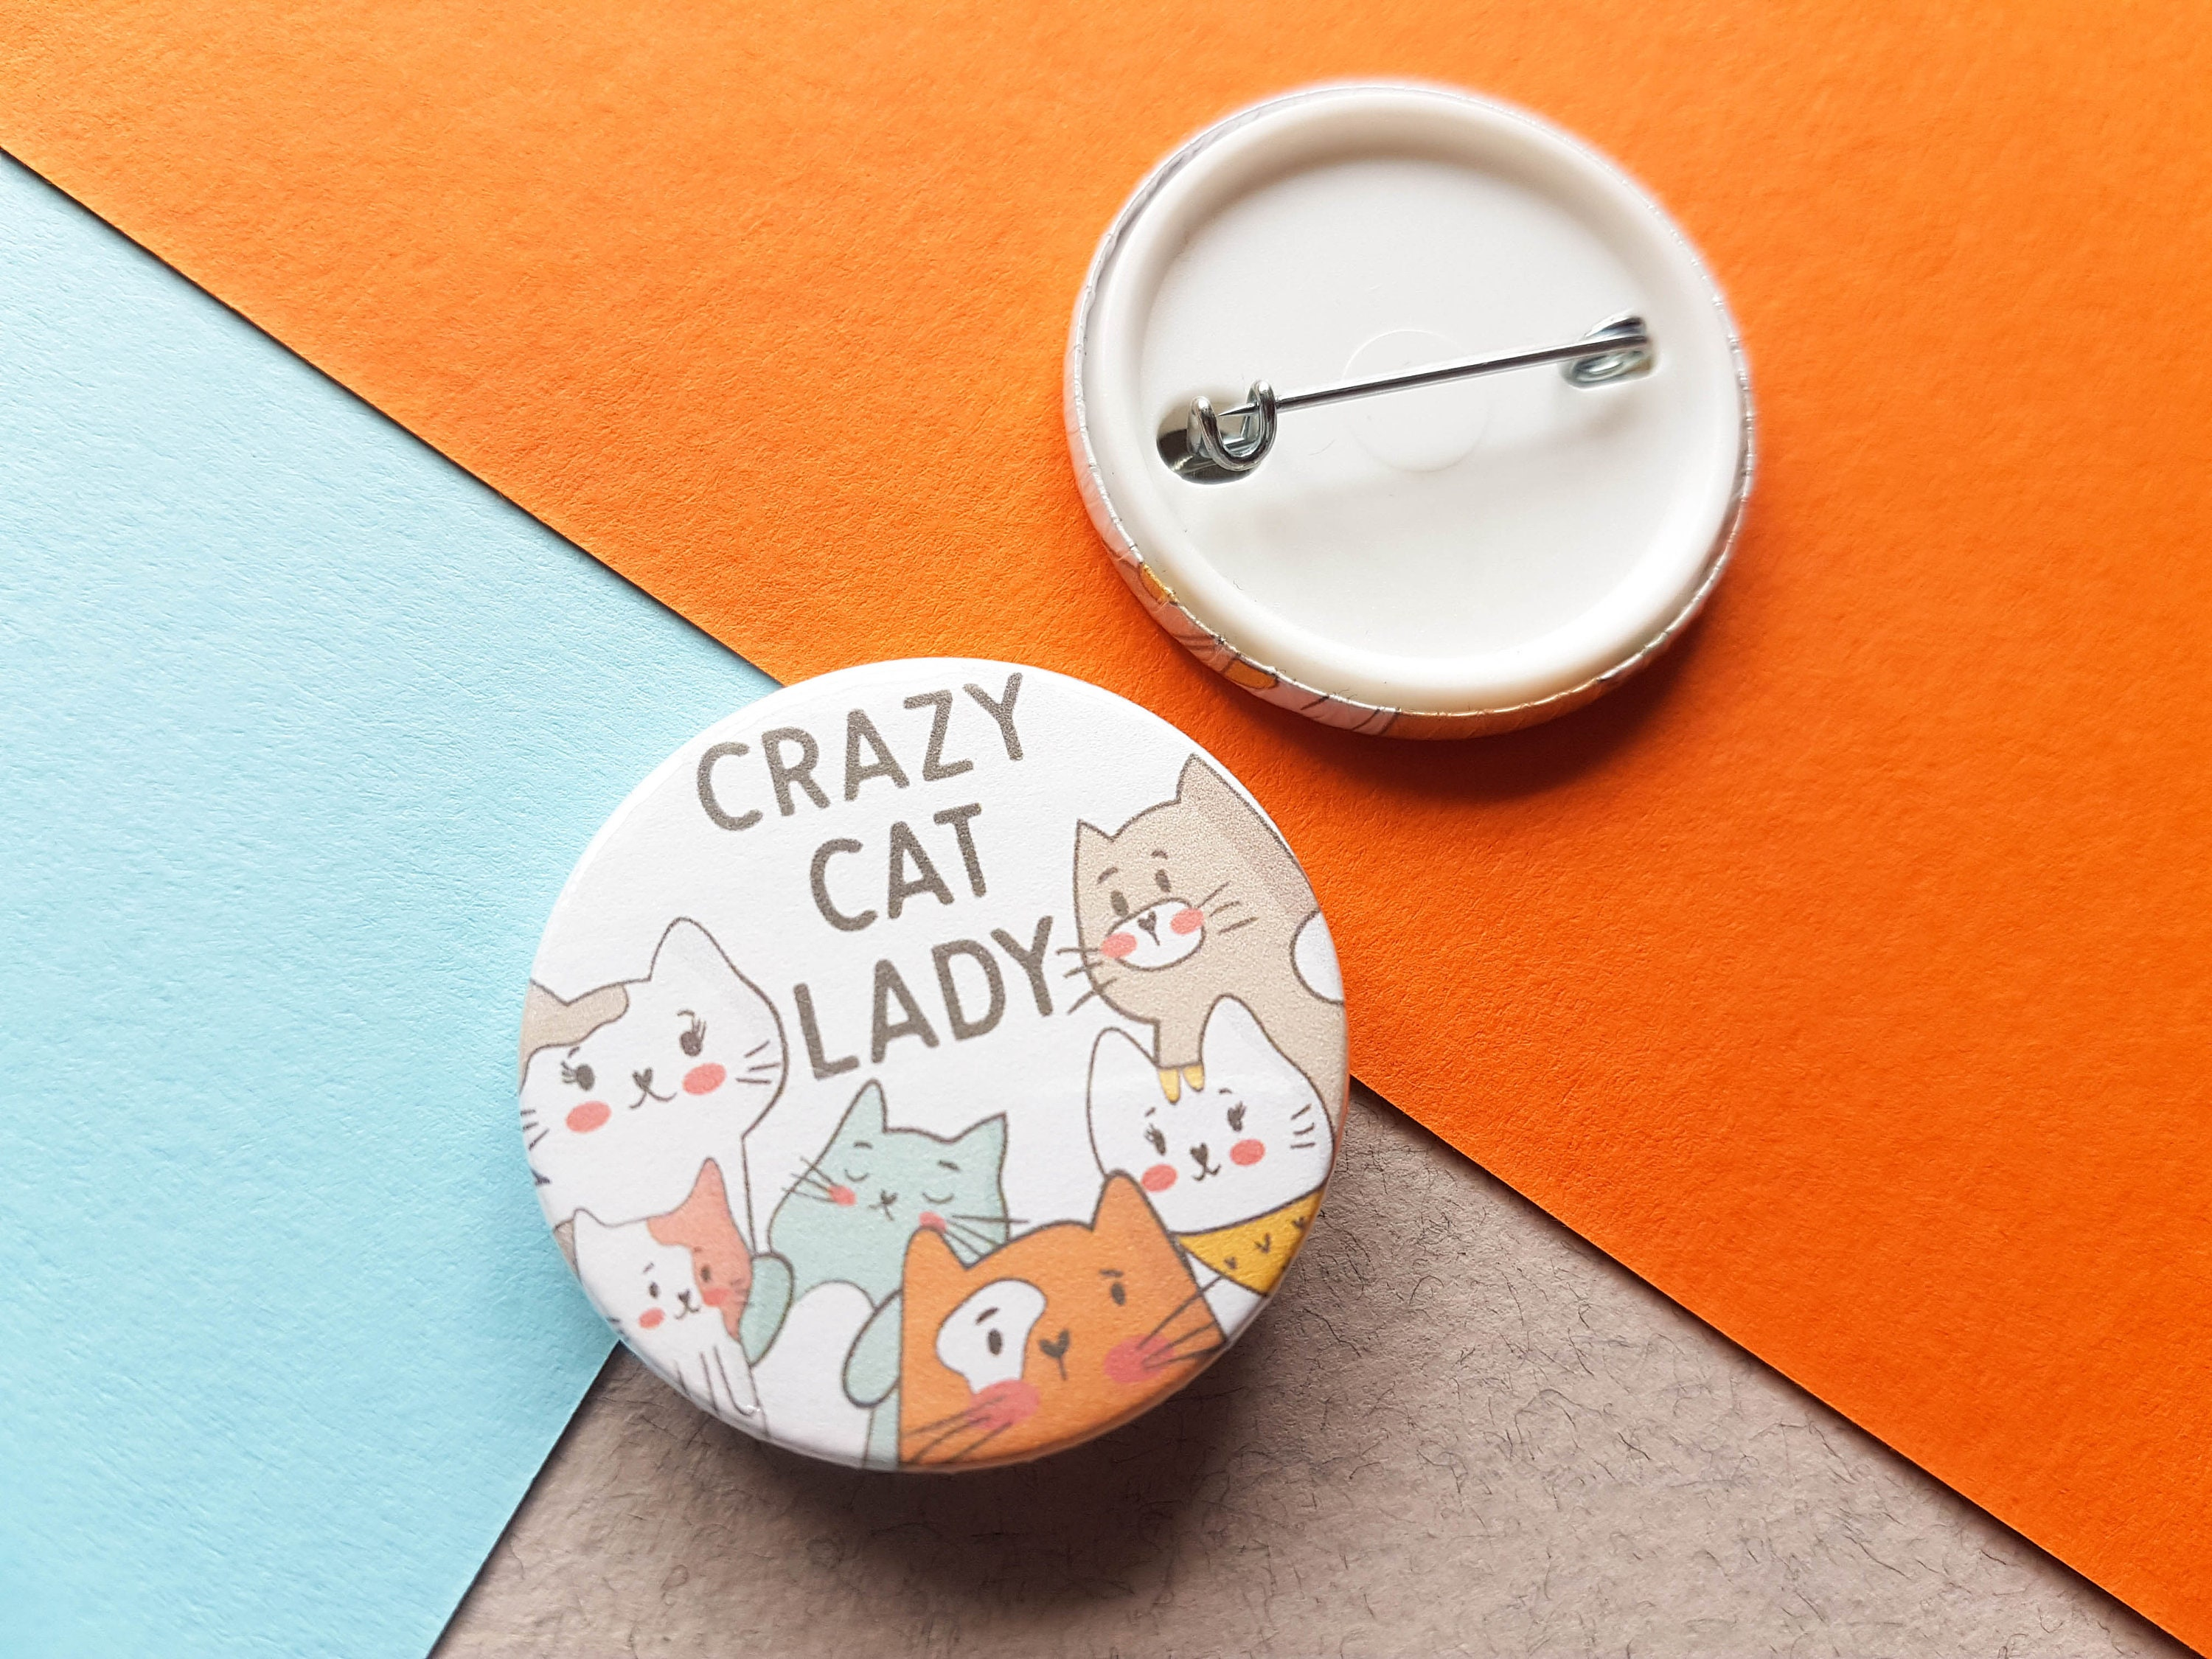 5ccc799453e19 Crazy Cat Lady Badge, Cat Badge, Mum Gift, Mum Birthday Gift, Cat Lover  Gift, Cute Button Badge, Friend Gift, Animal Badge, Small Cat Gift